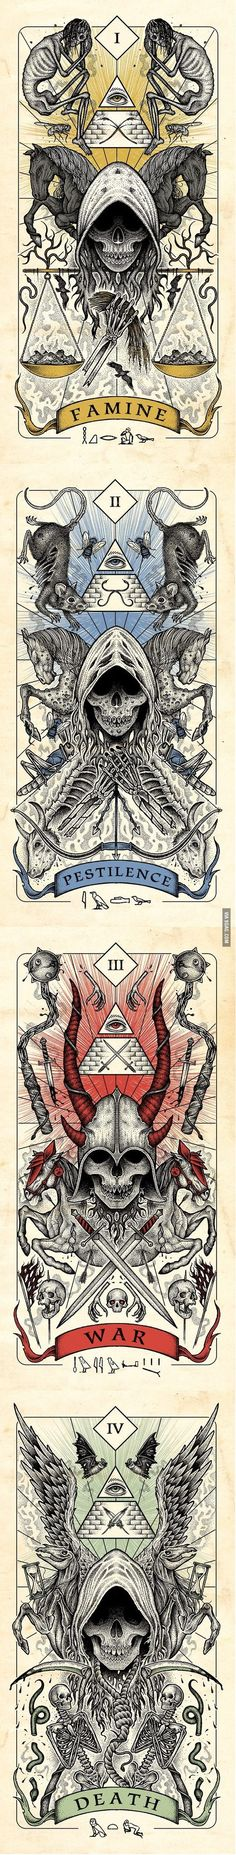 Four Horsemen of the Apocalypse... - 9GAG                                                                                                                                                                                 More